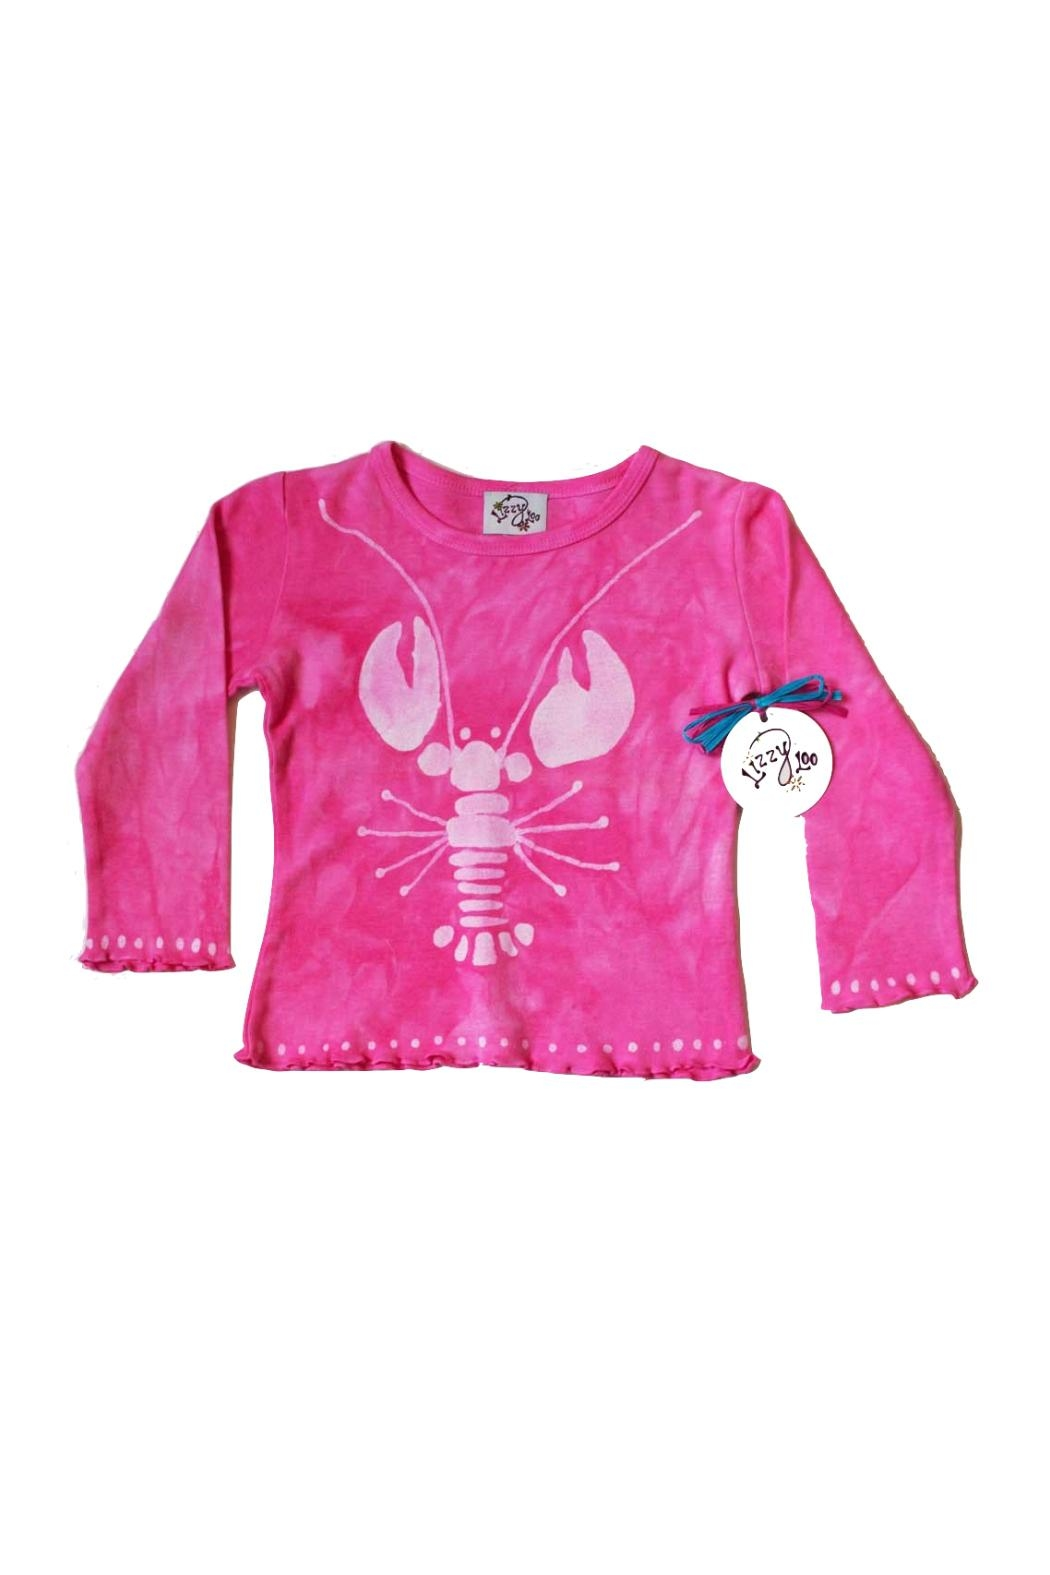 LizzyLoo Designs Lobster Long Sleeve Tee from Massachusetts by LizzyLoo & Friends — Shoptiques